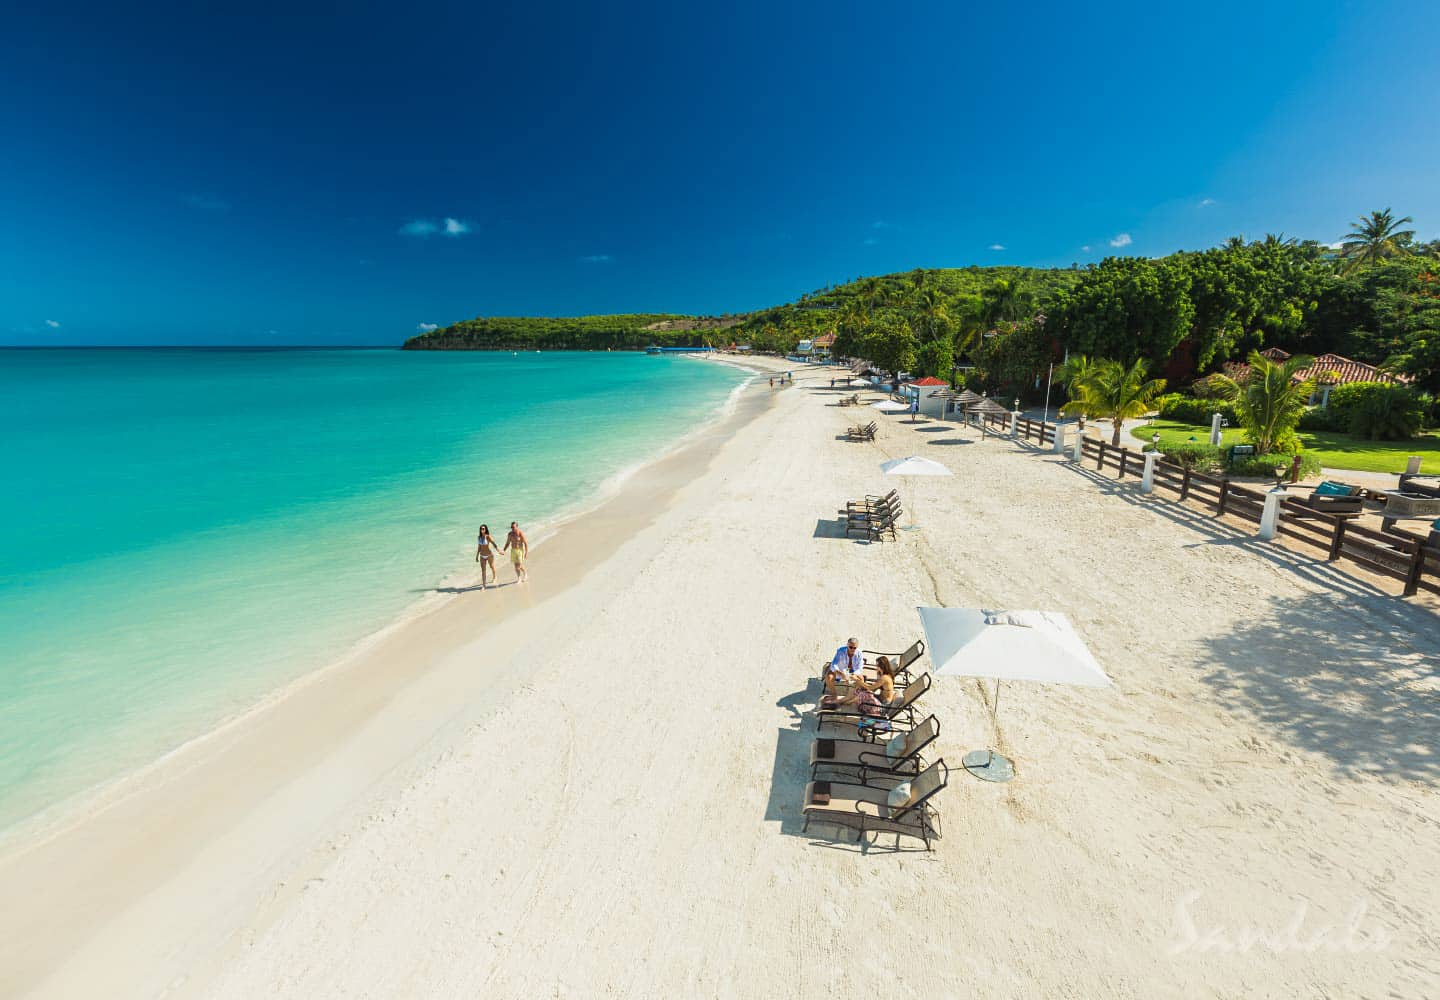 sandals grande antigua resort and spa, Antigua and Barbuda